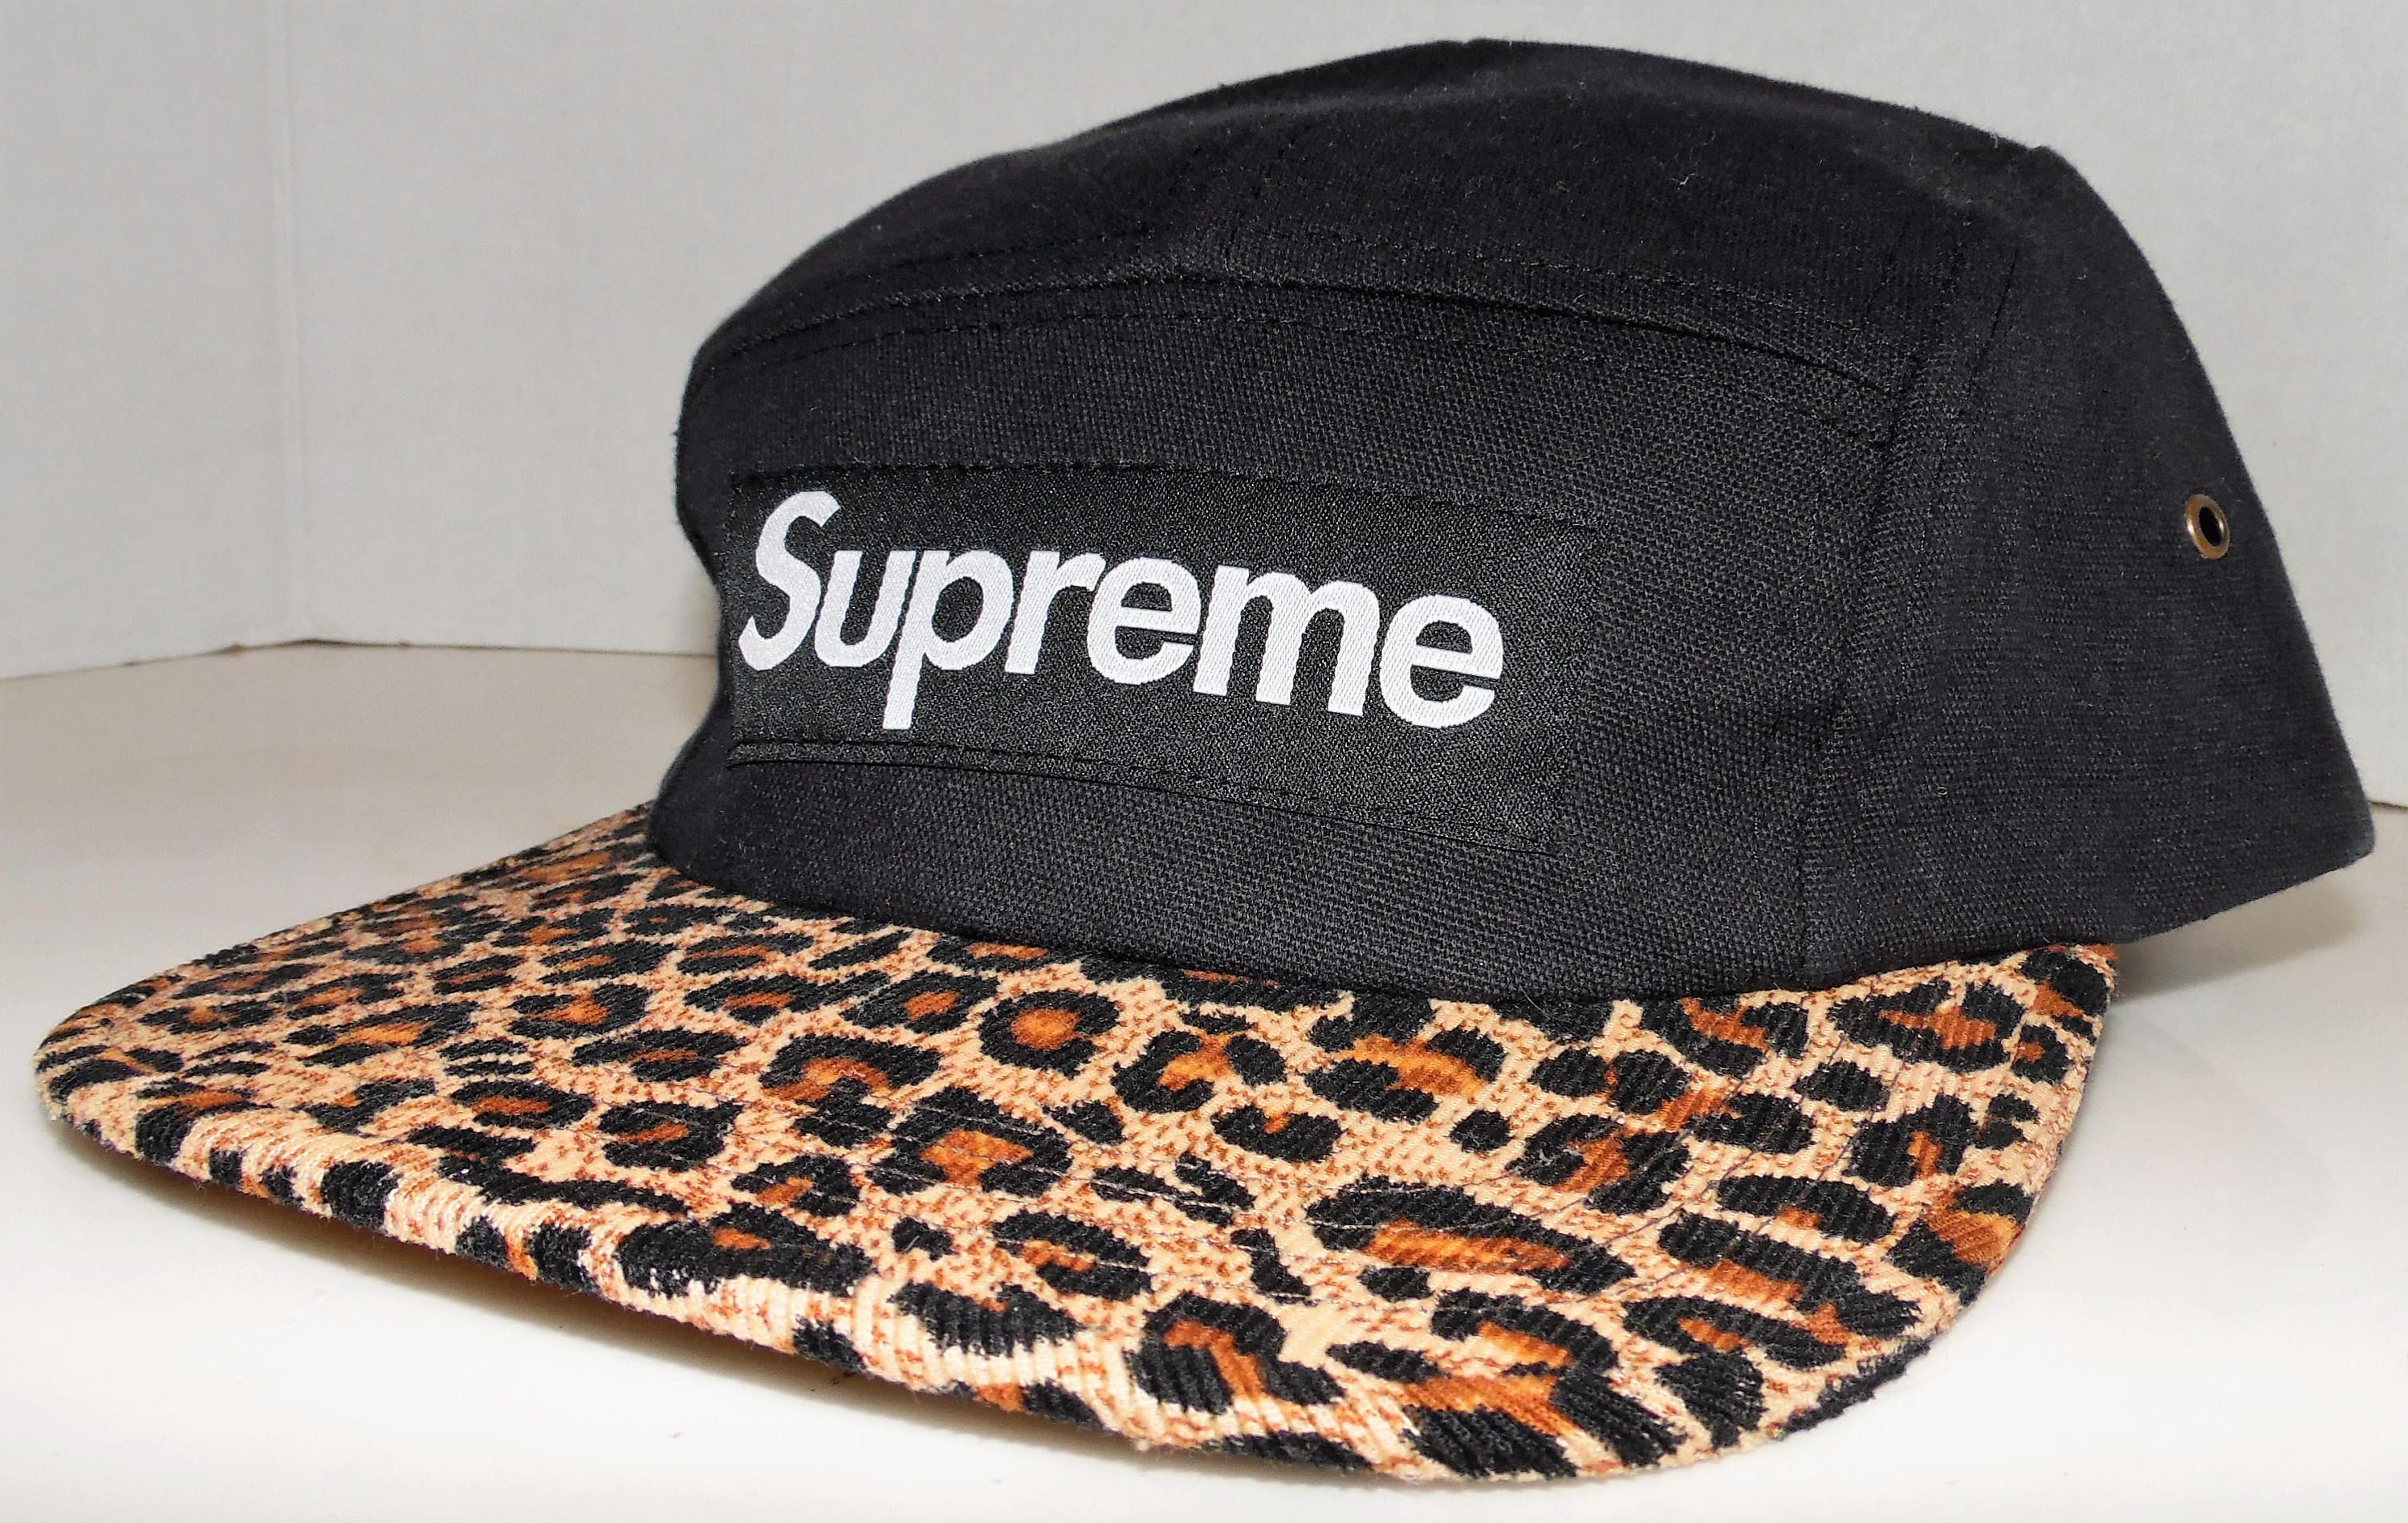 4c282095a SUPREME Leopard Print Bill 5 Panel Black Strapback Hat Cap Made In USA by  VintageStockJax on Etsy